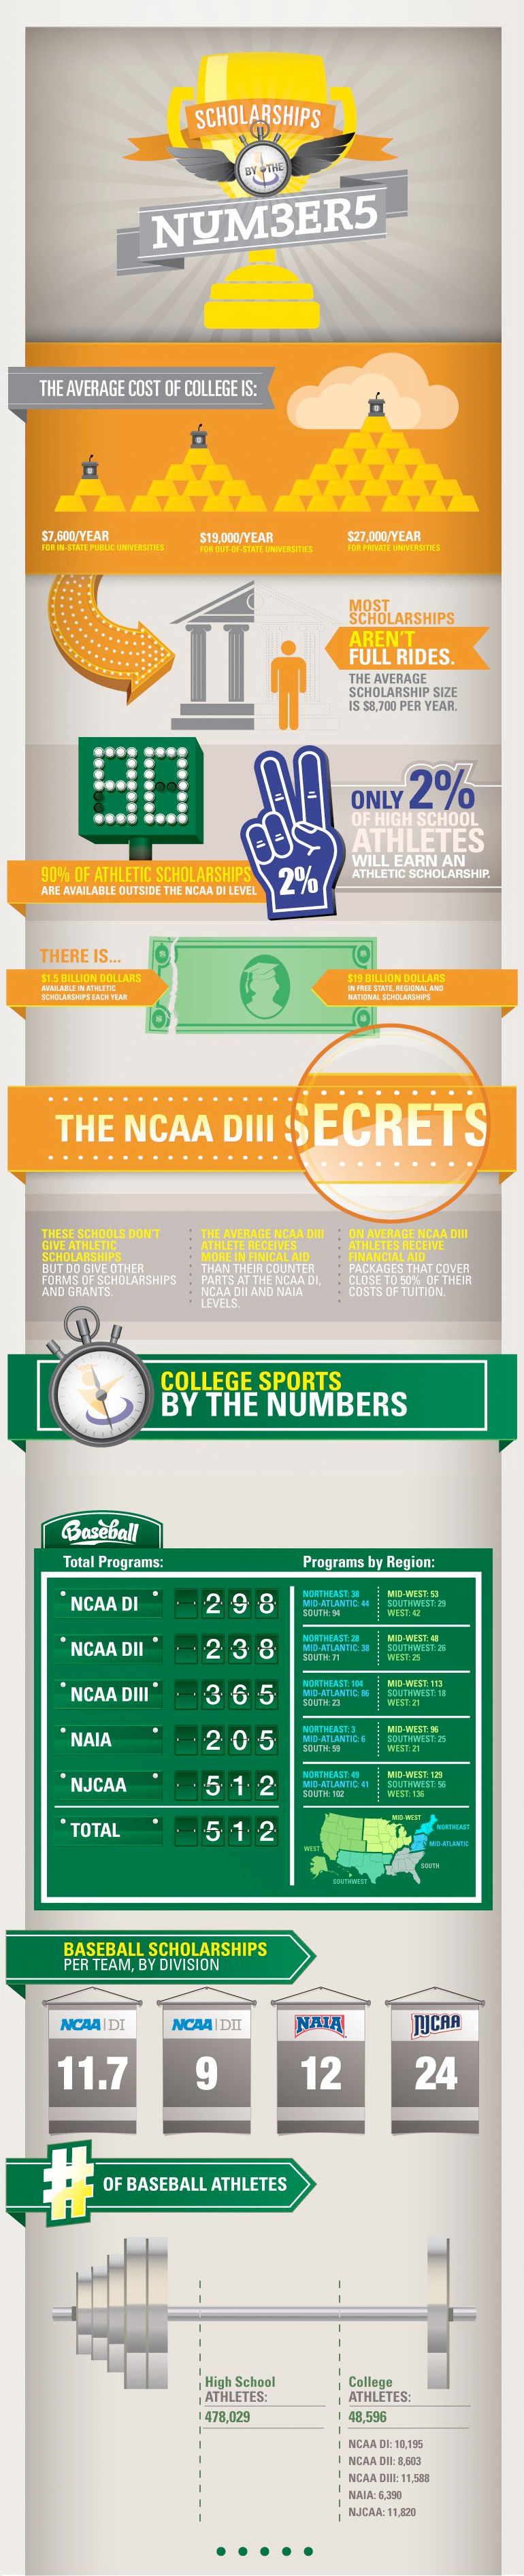 College Baseball Scholarship By The Numbers College Baseball Scholarships Scholarships For College